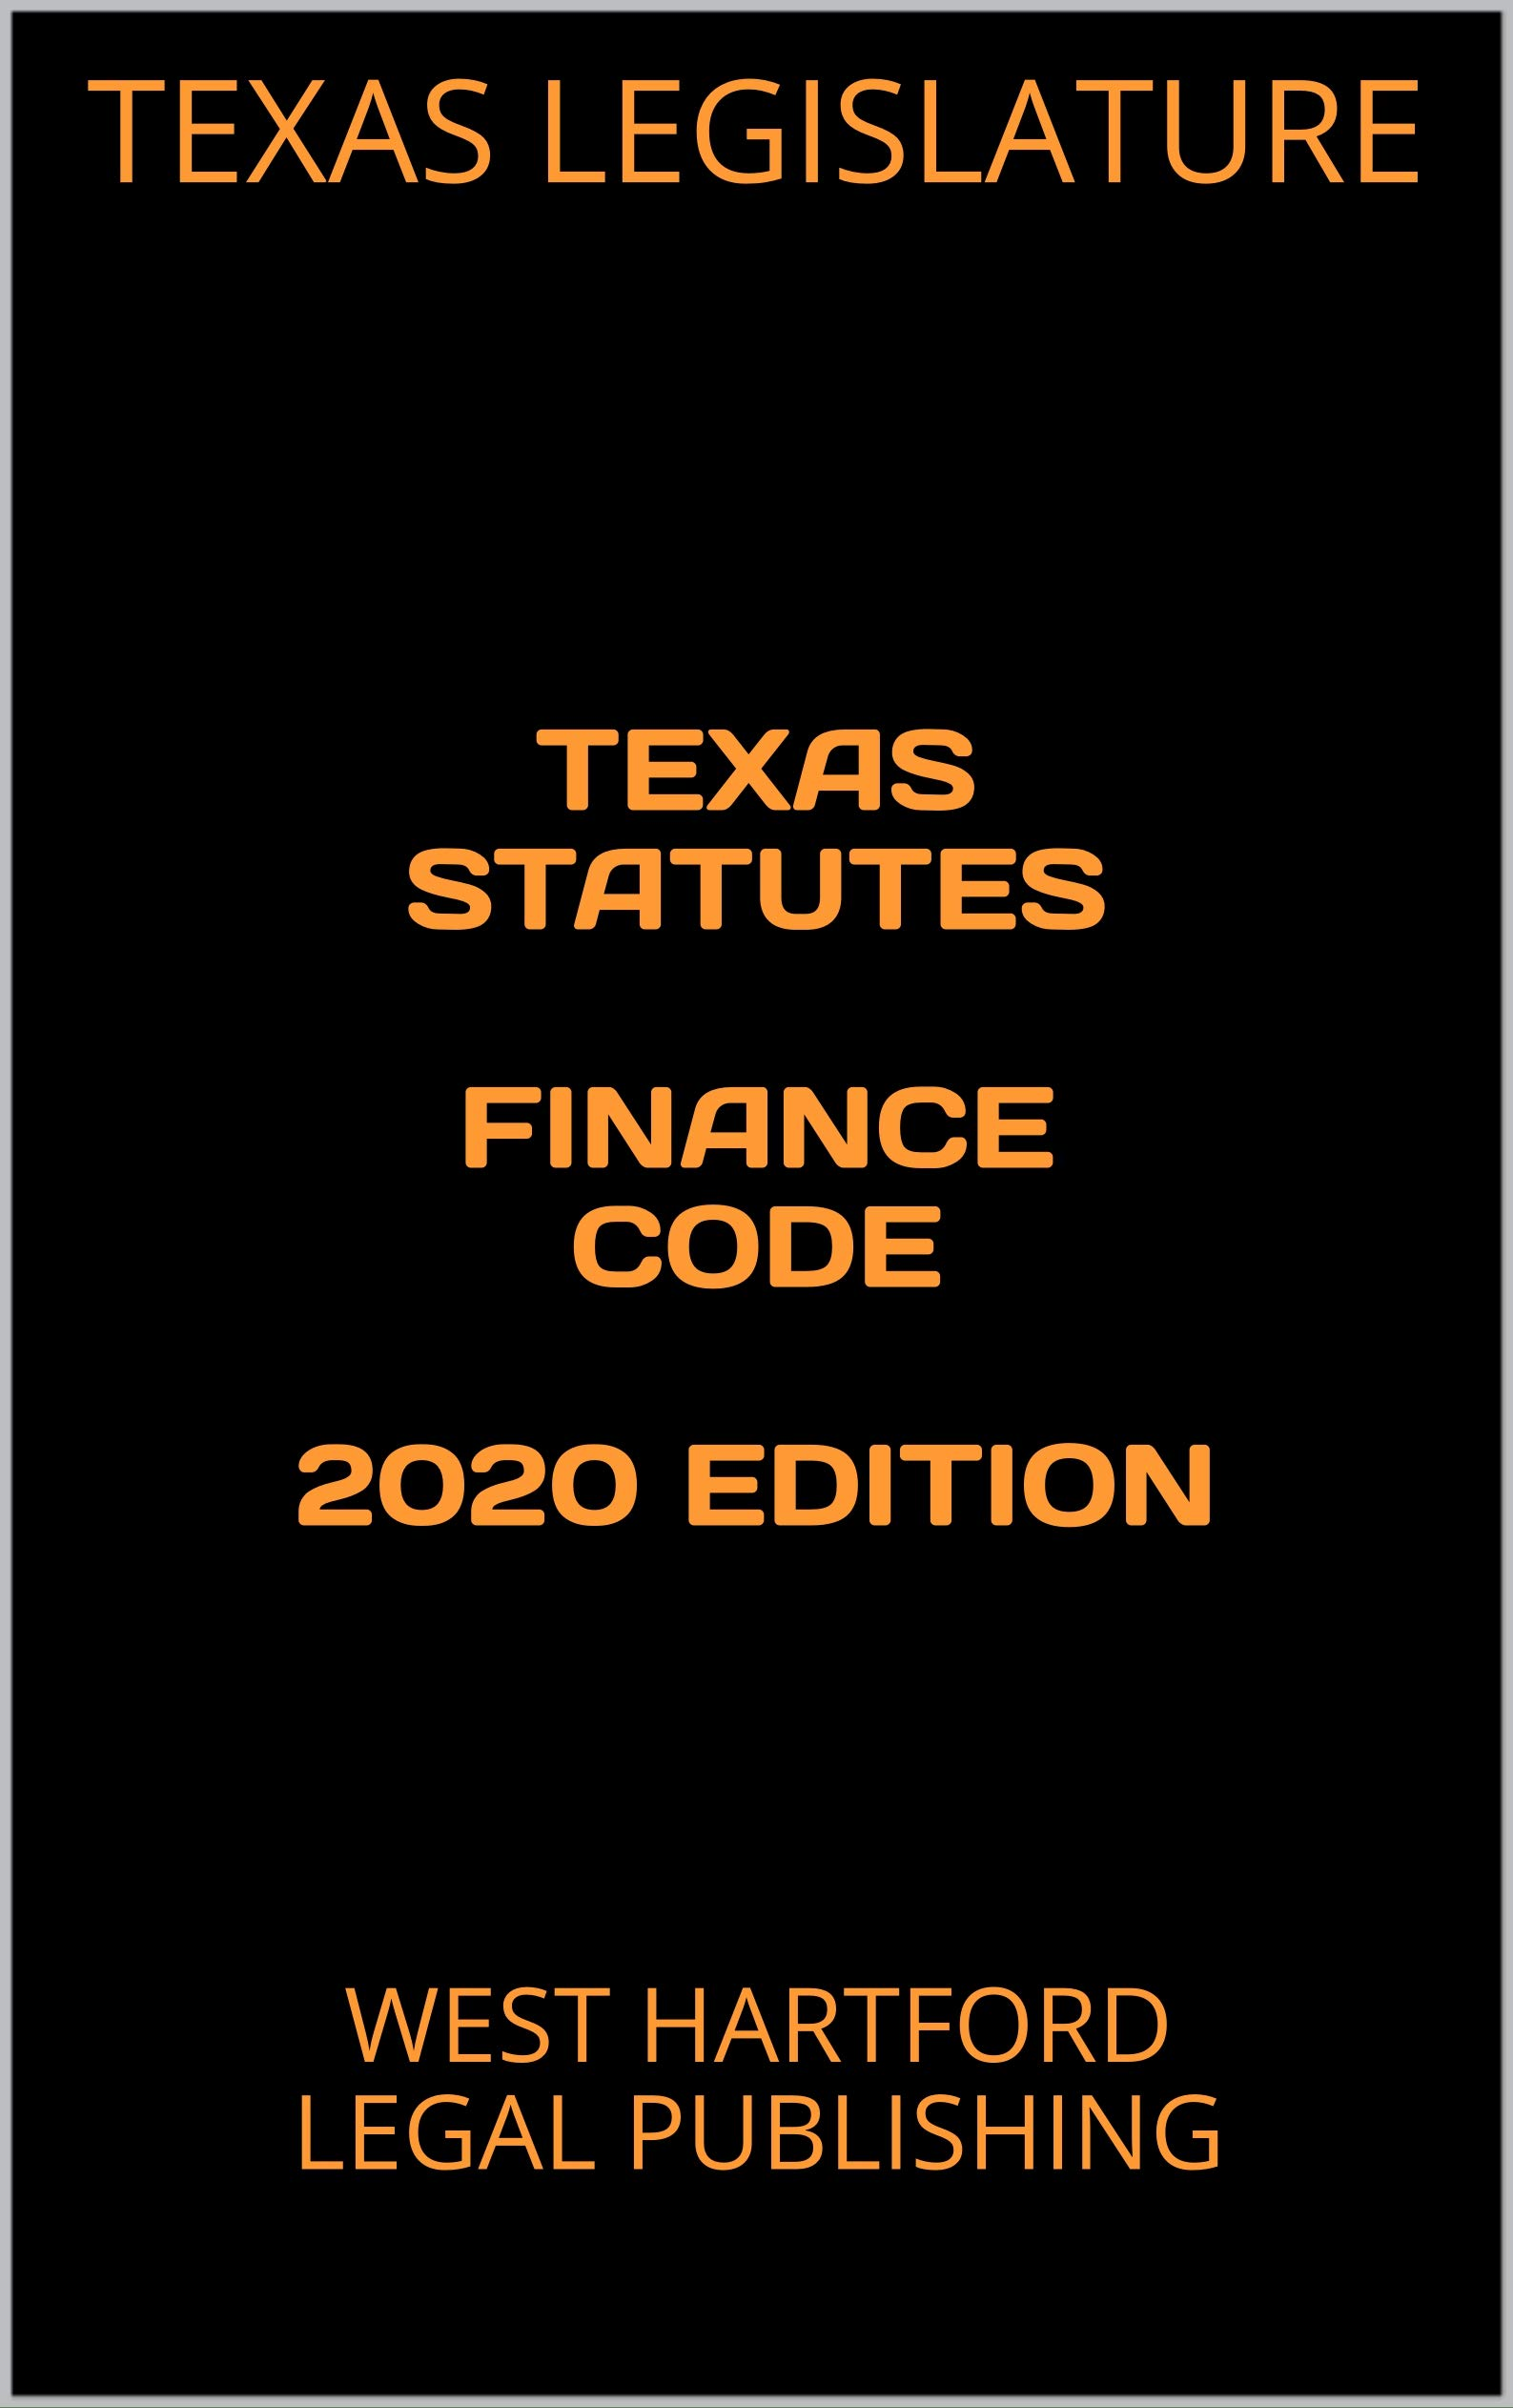 TEXAS STATUTES FINANCE CODE 2020 EDITION: WEST HARTFORD LEGAL PUBLISHING